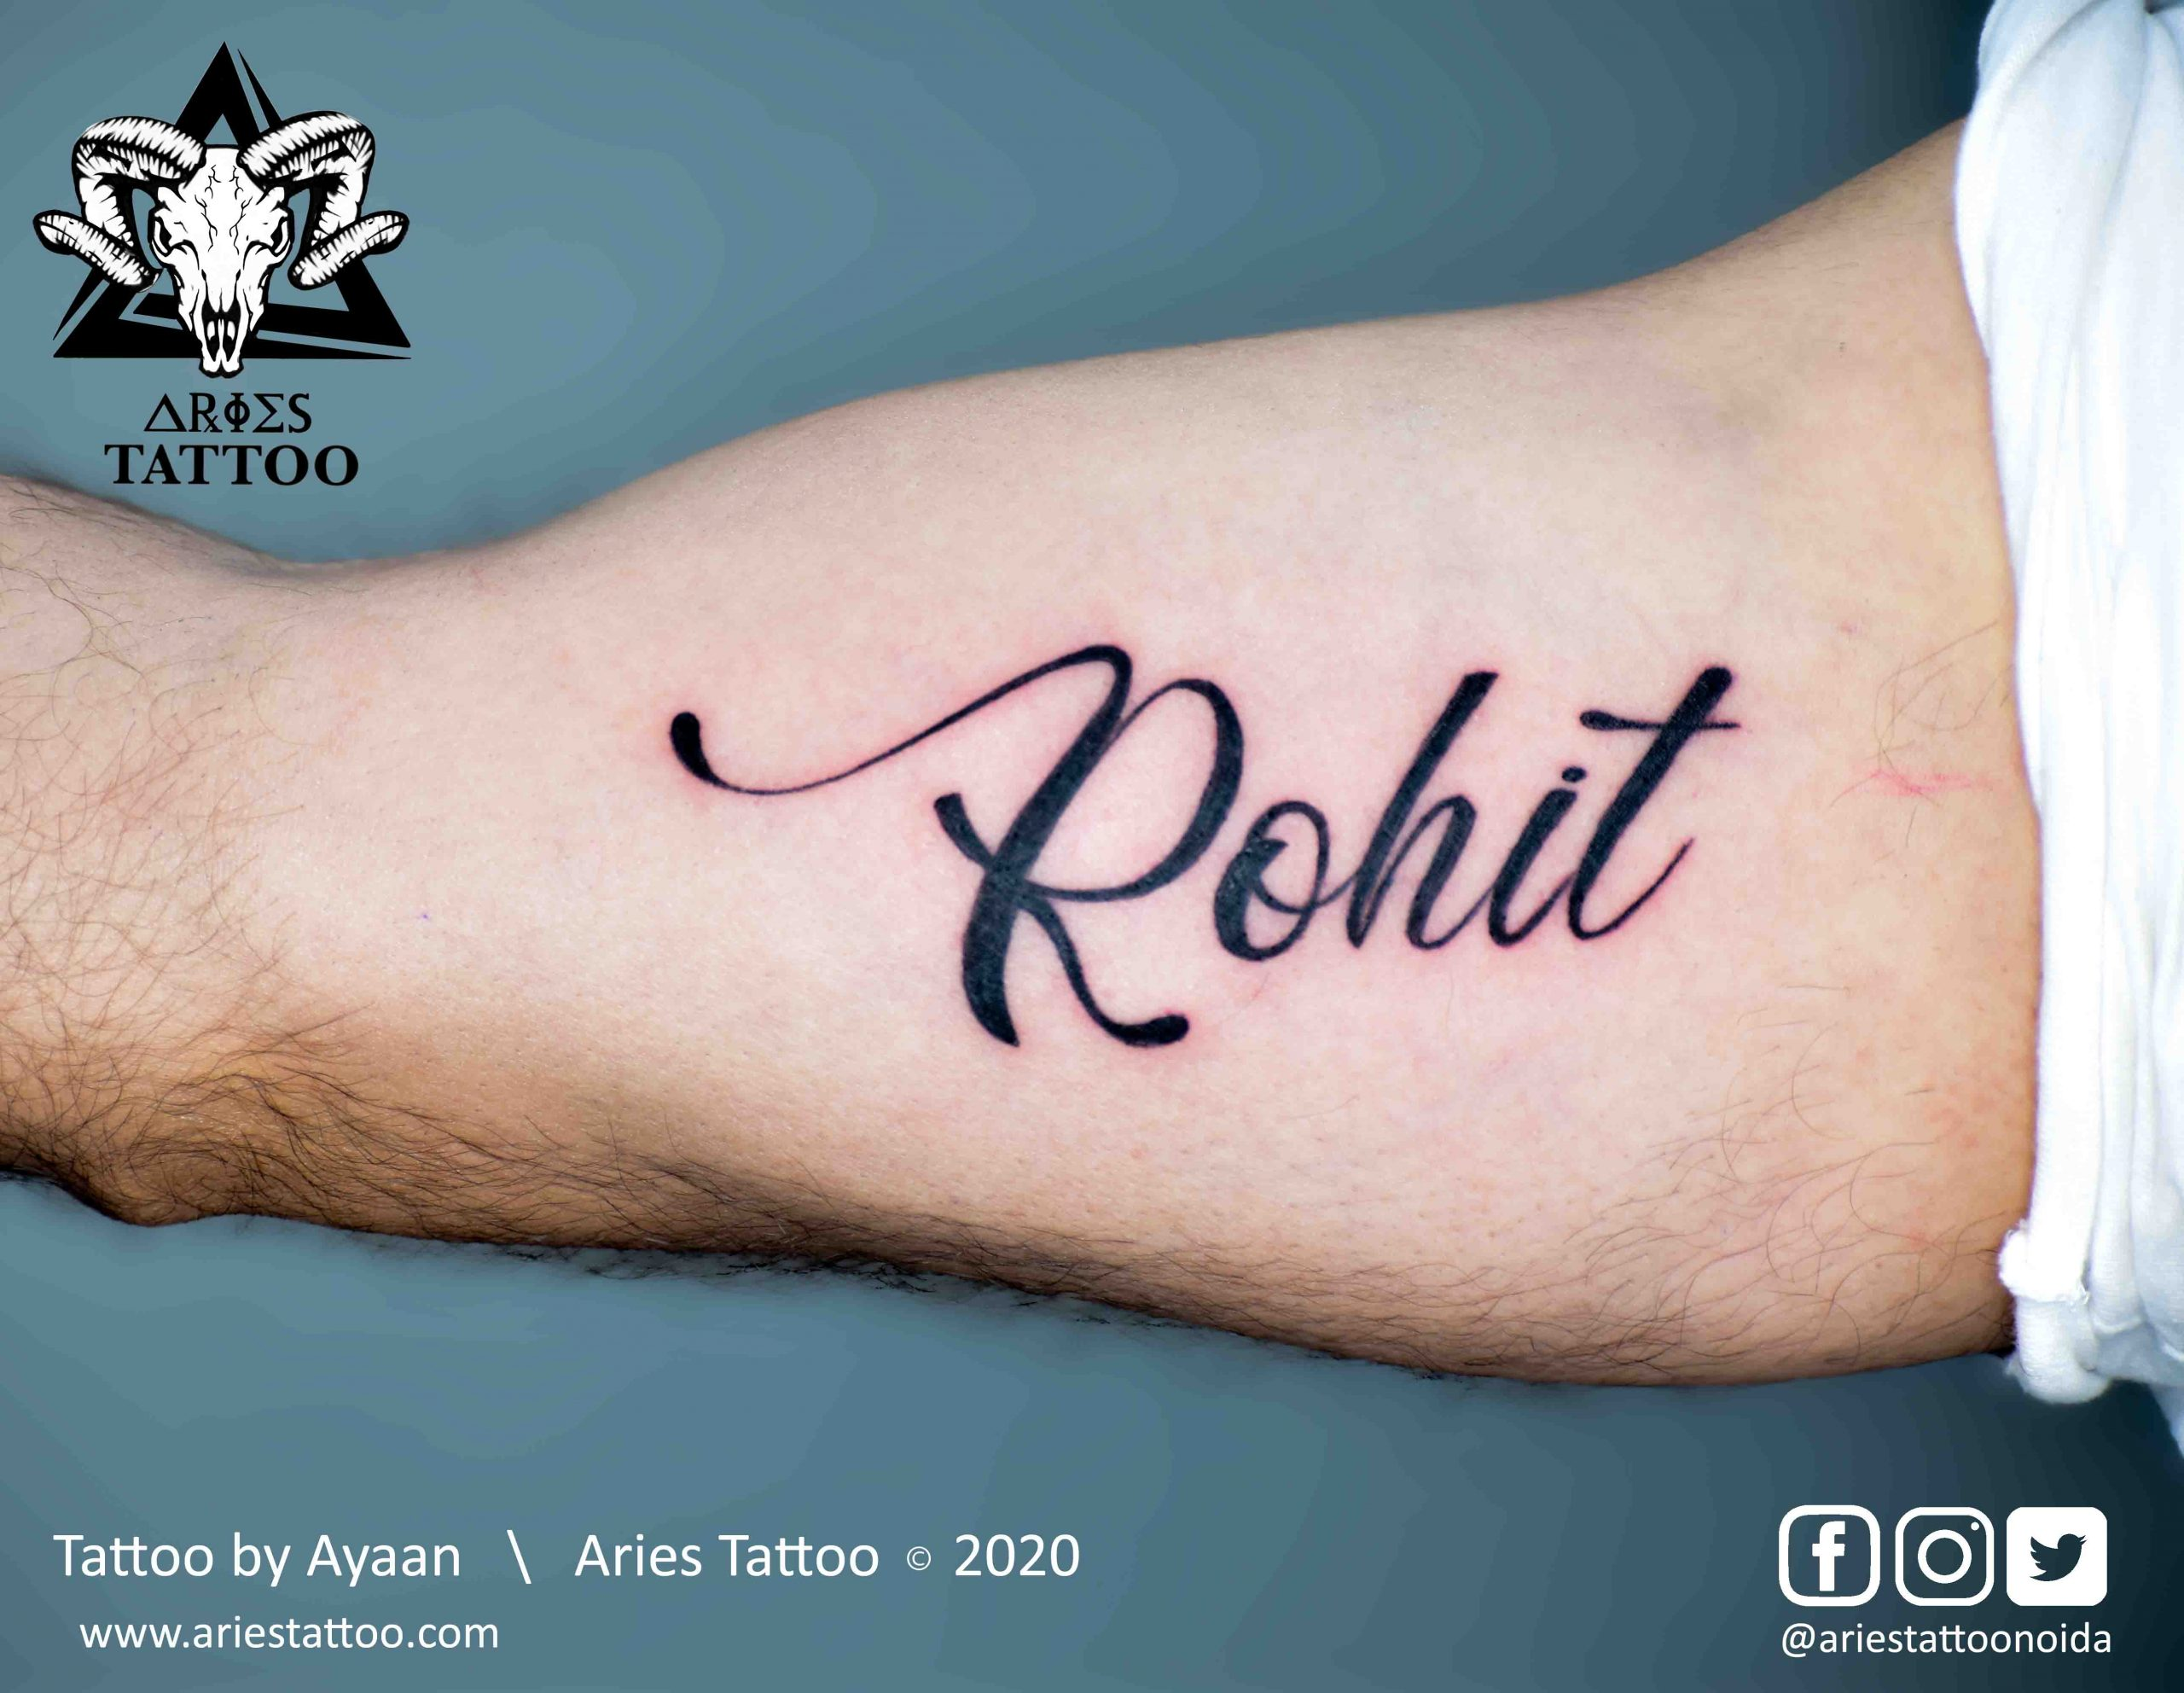 calligraphy tattoo by ayaan| |Aries Tattoo Noida | Tattoo Shop and Studio In Noida